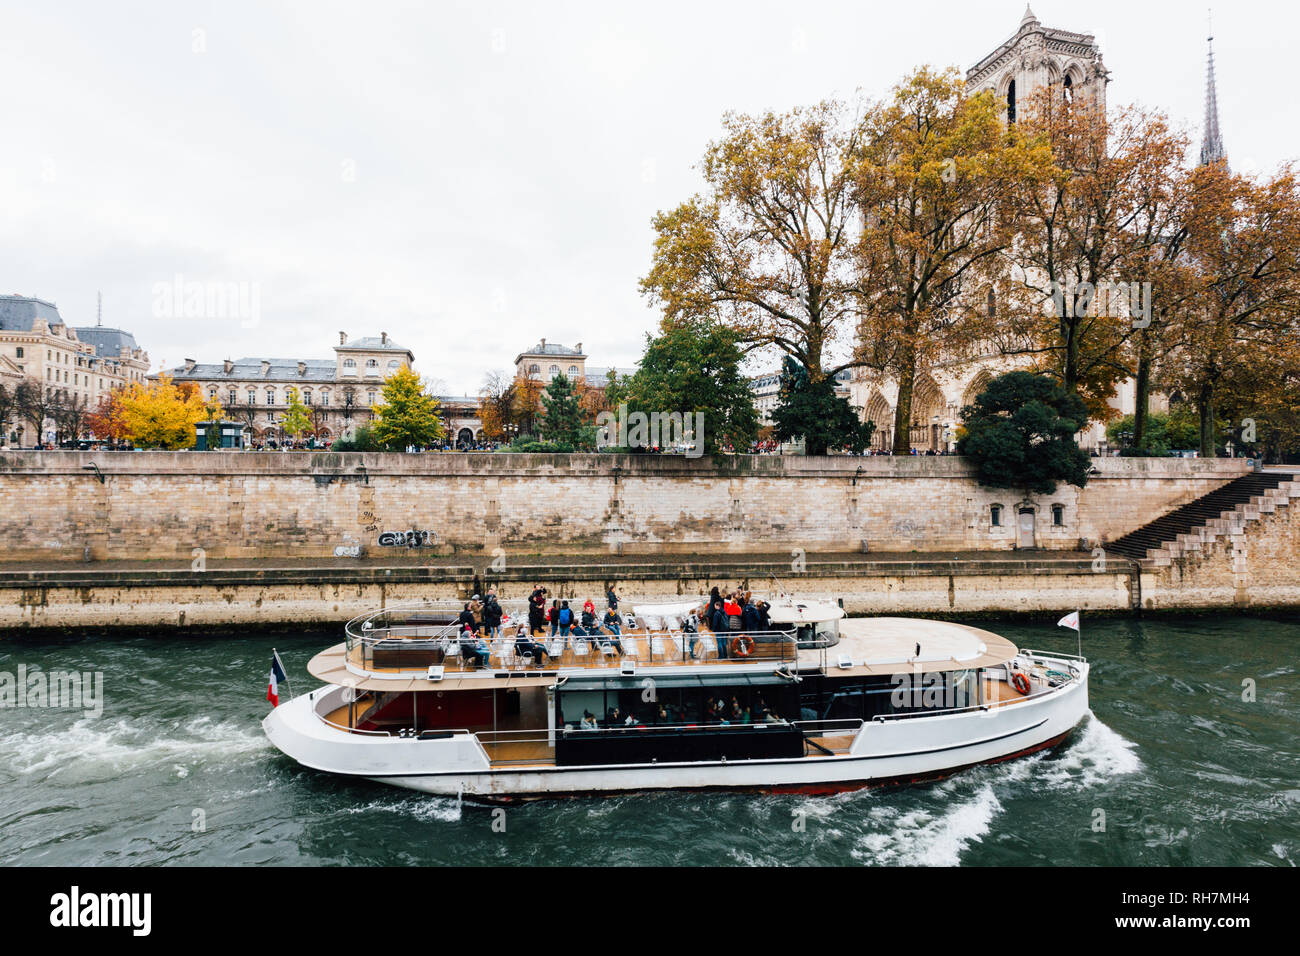 Paris (France) - Walking along the river Seine in a winter day Stock Photo